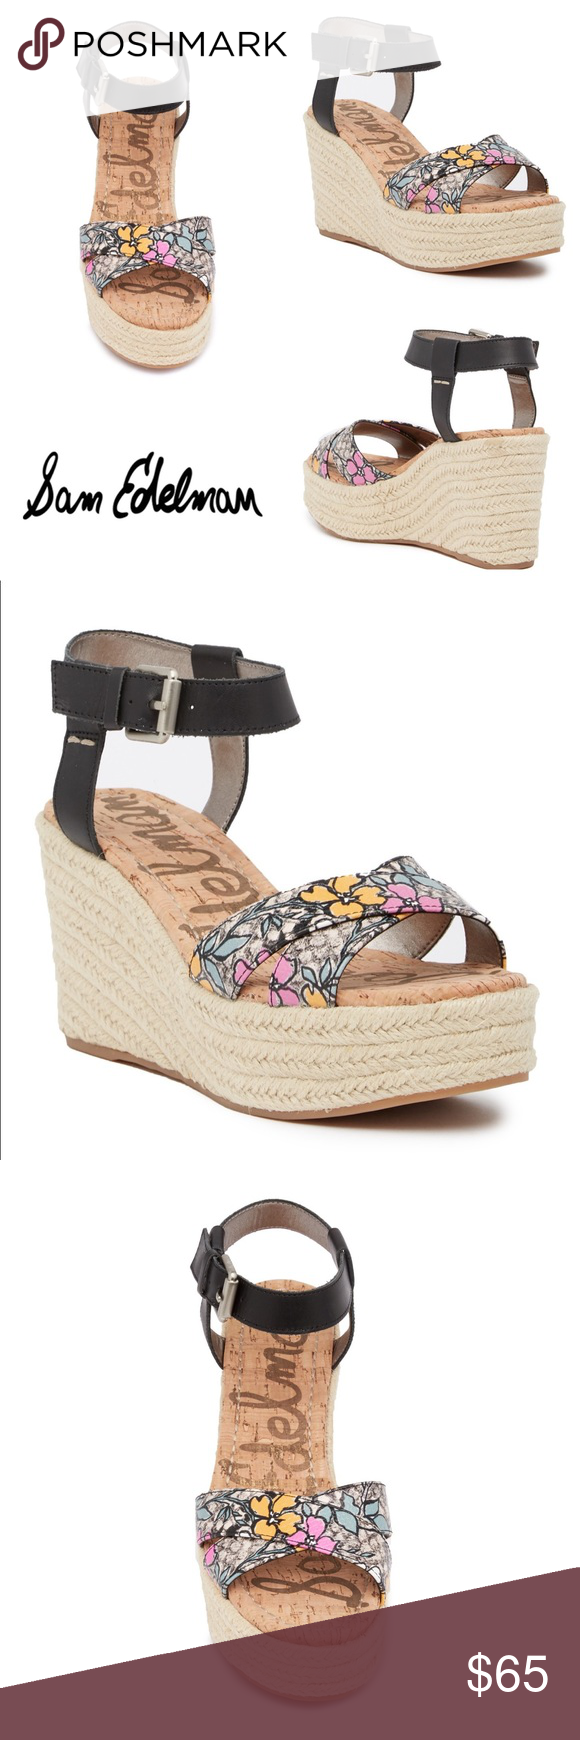 cfa0dfd025332 NWT Sam Edelman Destin Espadrille Wedge Sandal 11M SAME DAY or NEXT DAY at  the latest shipping!! • Sizing  11M. True to size. Standard width.